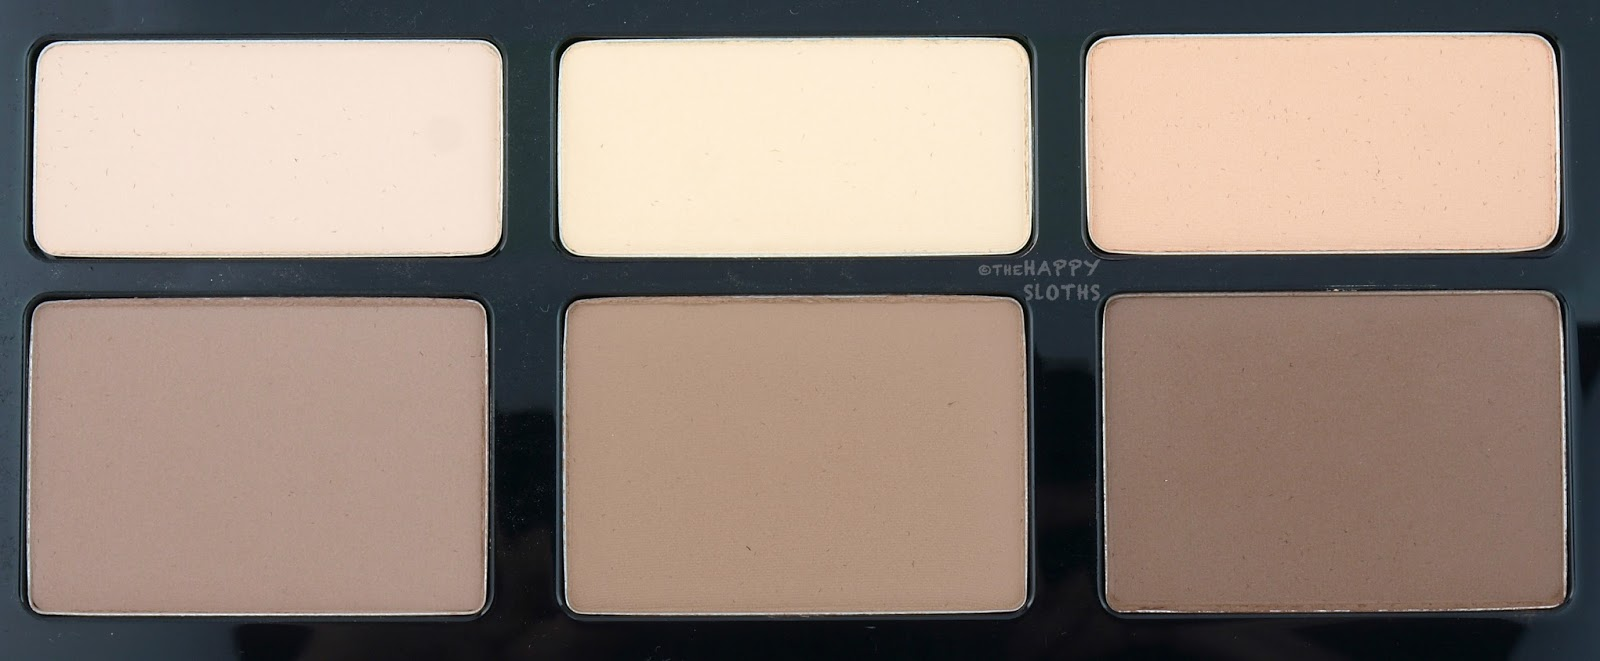 Kat Von D Shade + Light Face Contour Refillable Palette Review Swatches